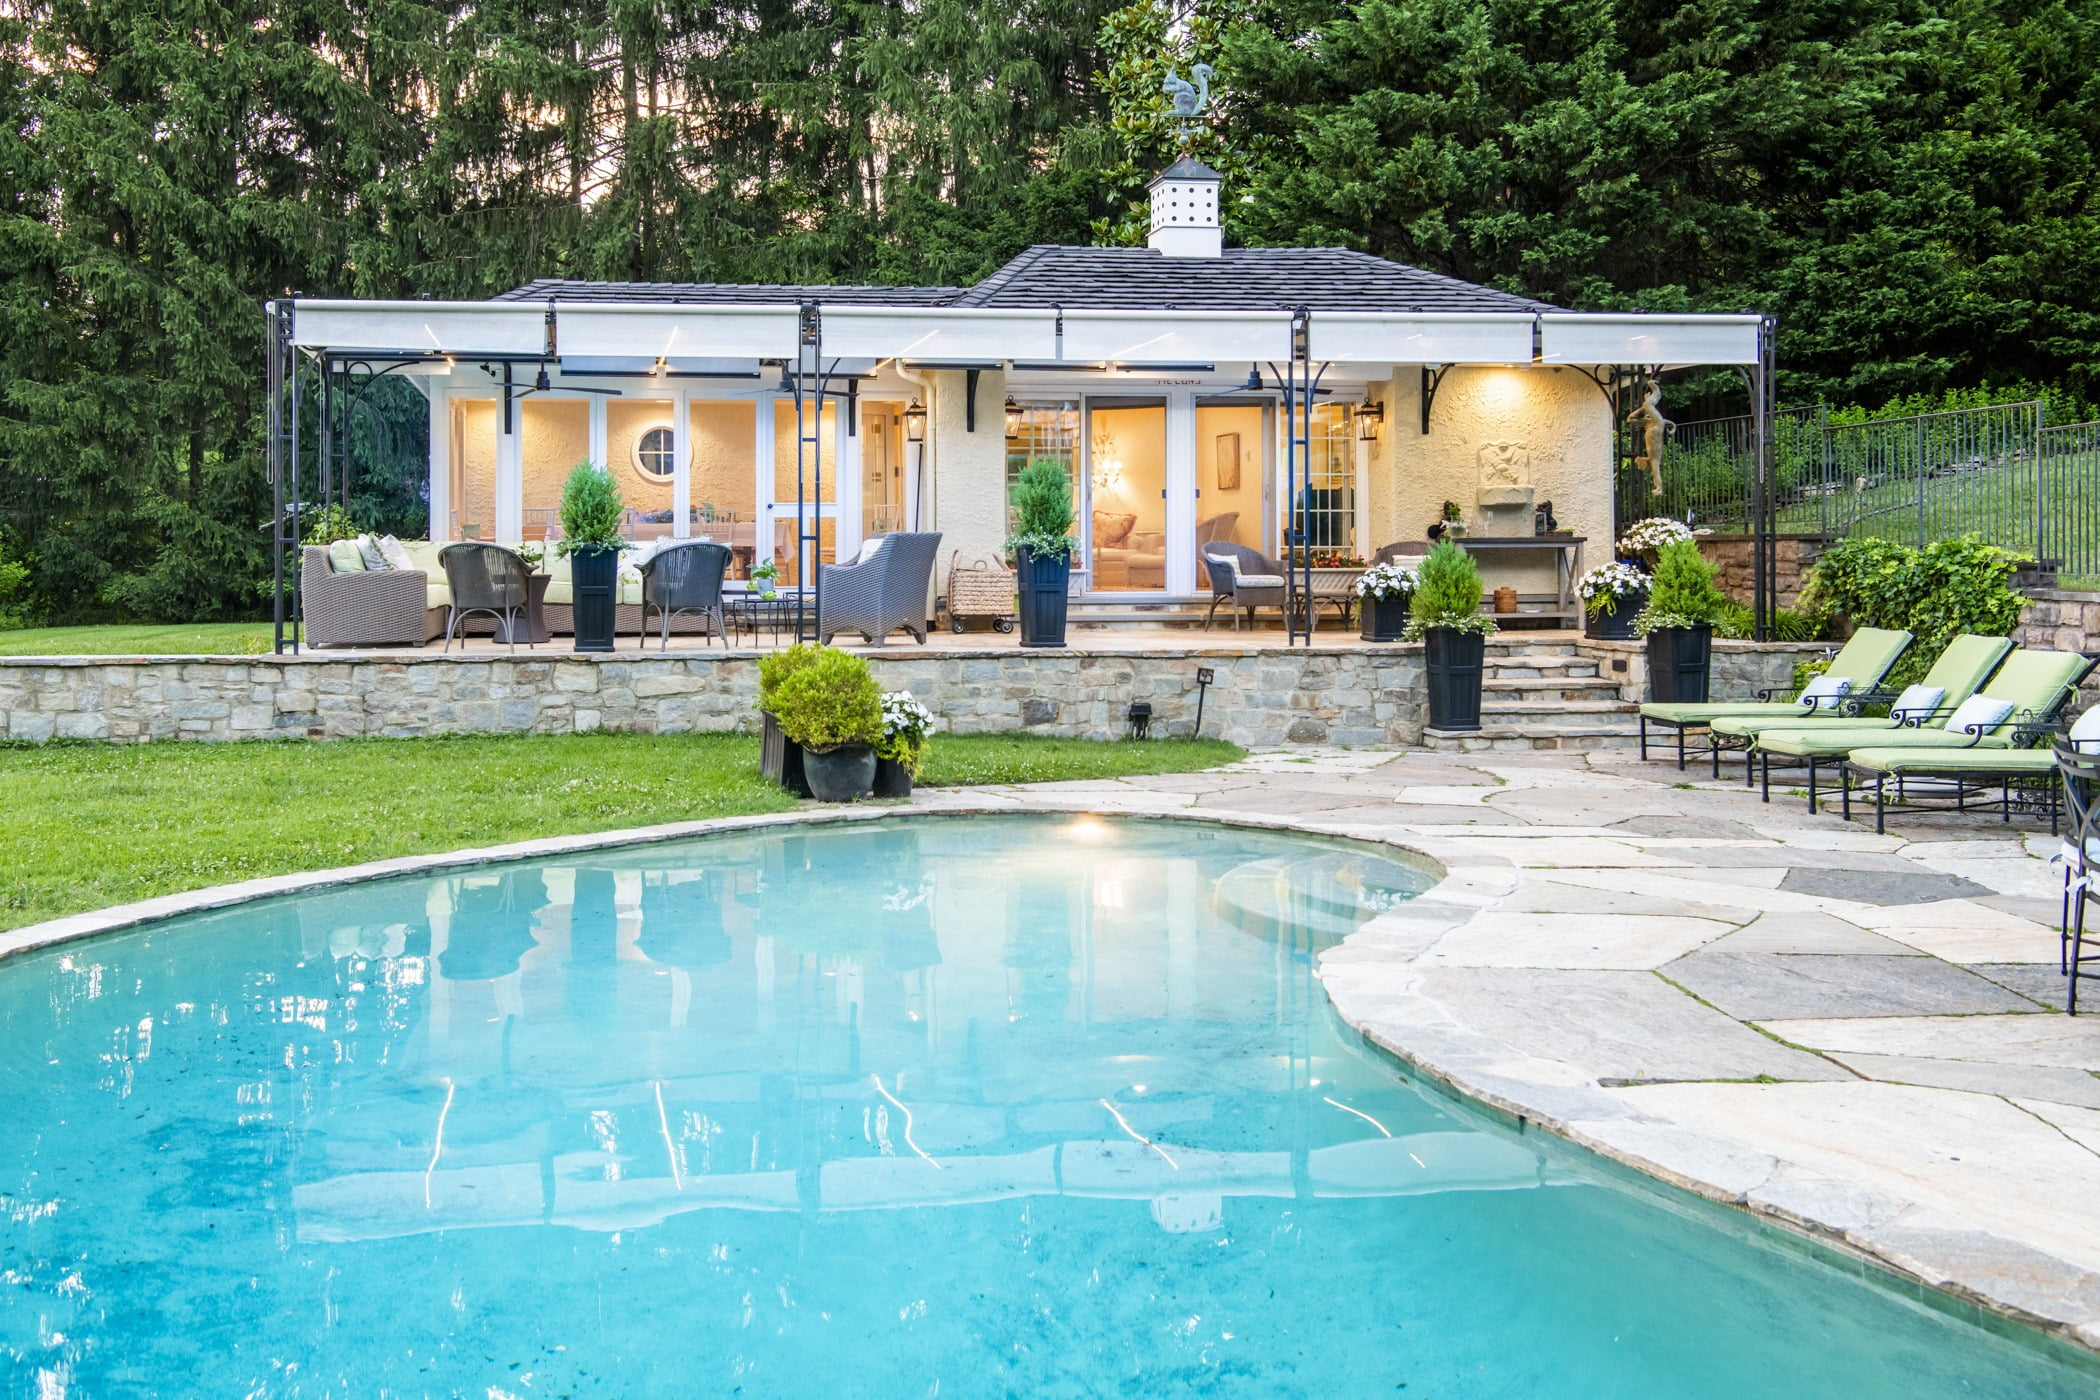 Luxury pool house custom designed for a home remodel with a large seating space and large metal pergola (Pool view)